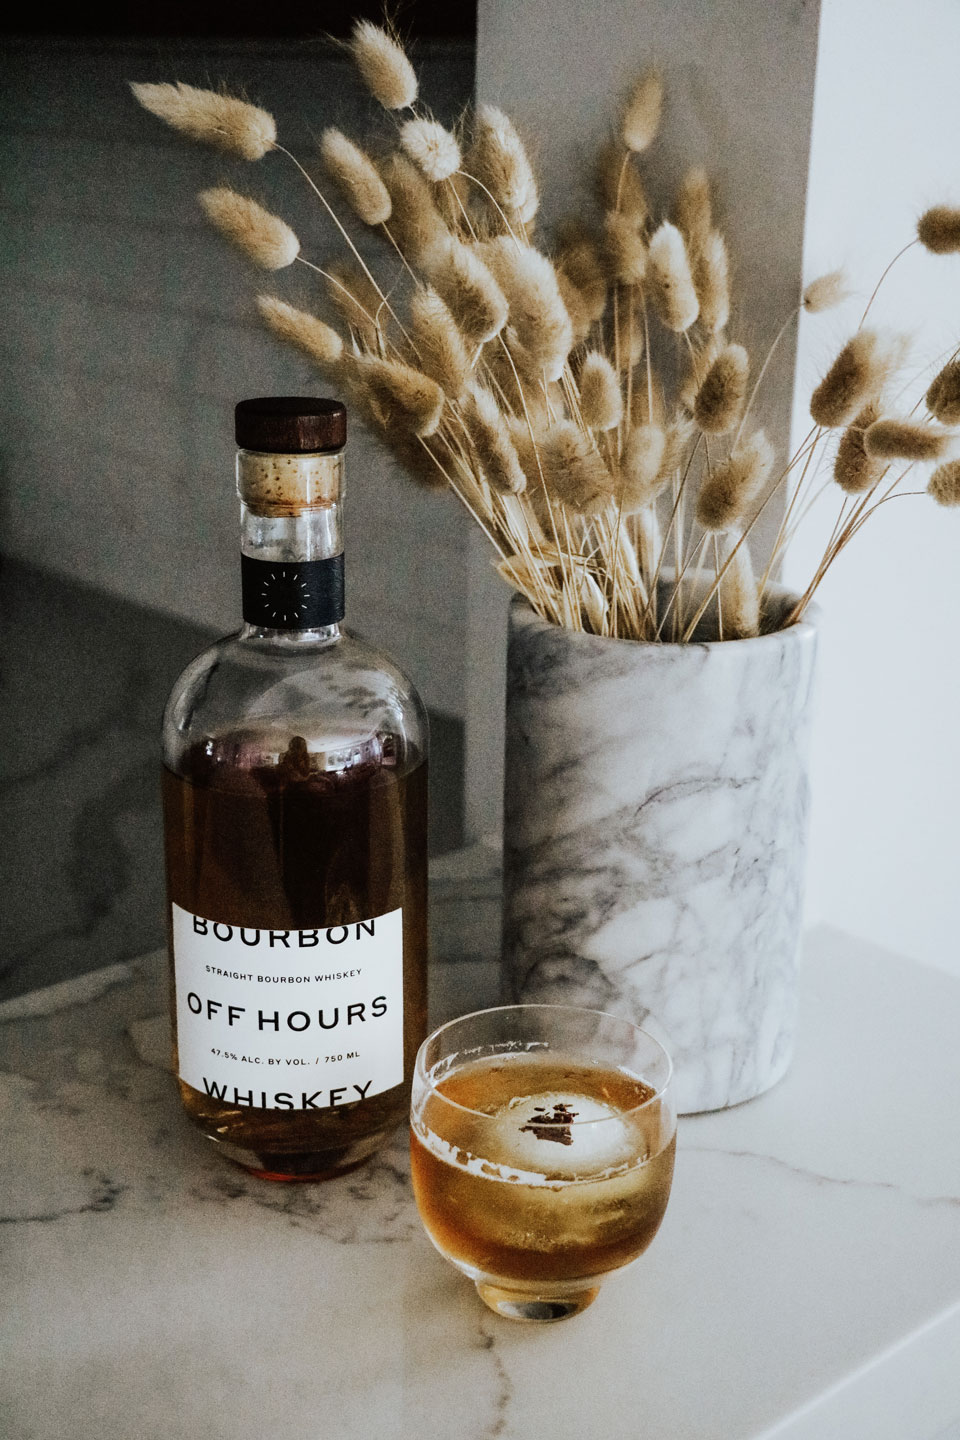 Off Hours Bourbon Branding and Design by Colony